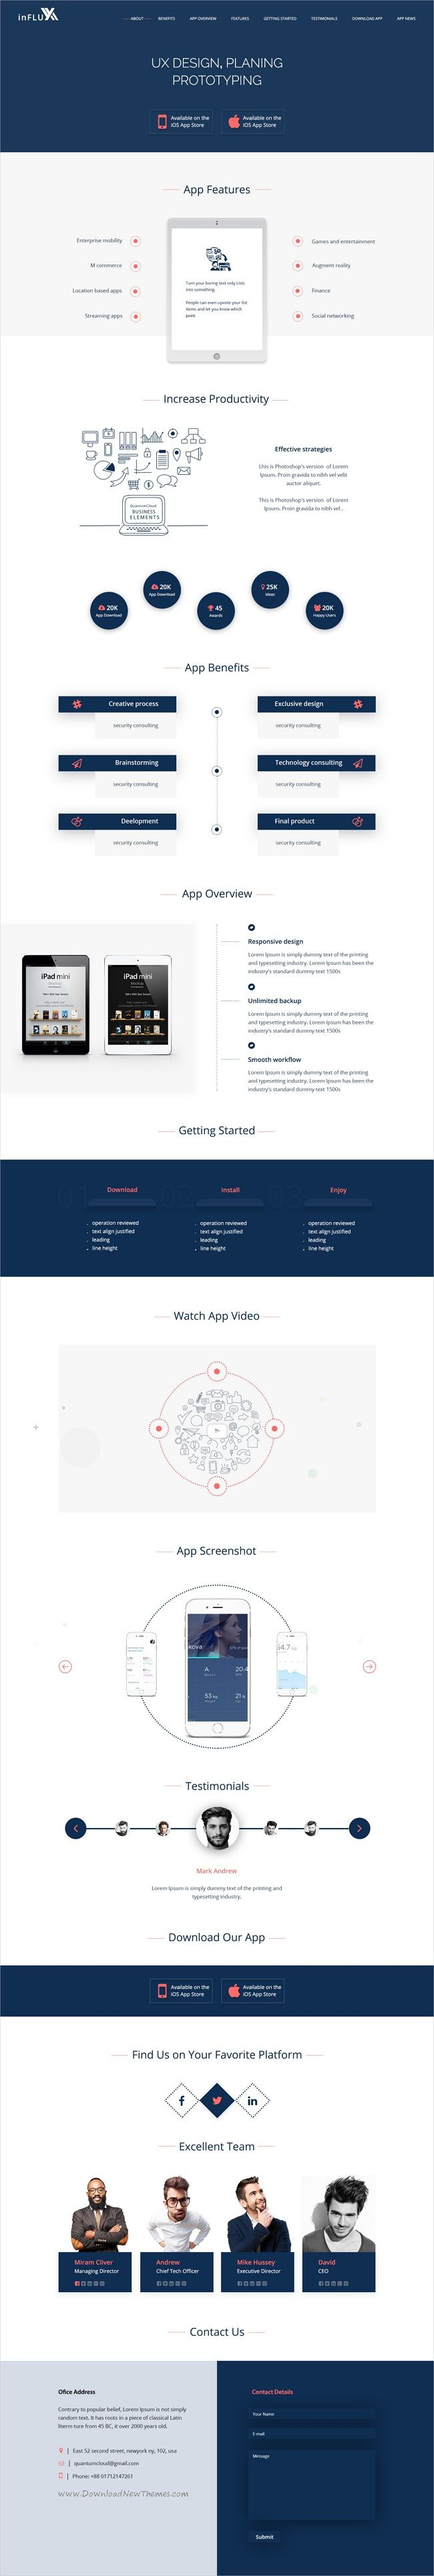 Cool 1.25 Button Template Thick 12 Piece Puzzle Template Square 1st Time Job Resume 2.25 Button Template Young 2007 Word Templates Coloured2015 Calendar Template Microsoft 607 Best Images About Best Responsive Landing Page Template On ..